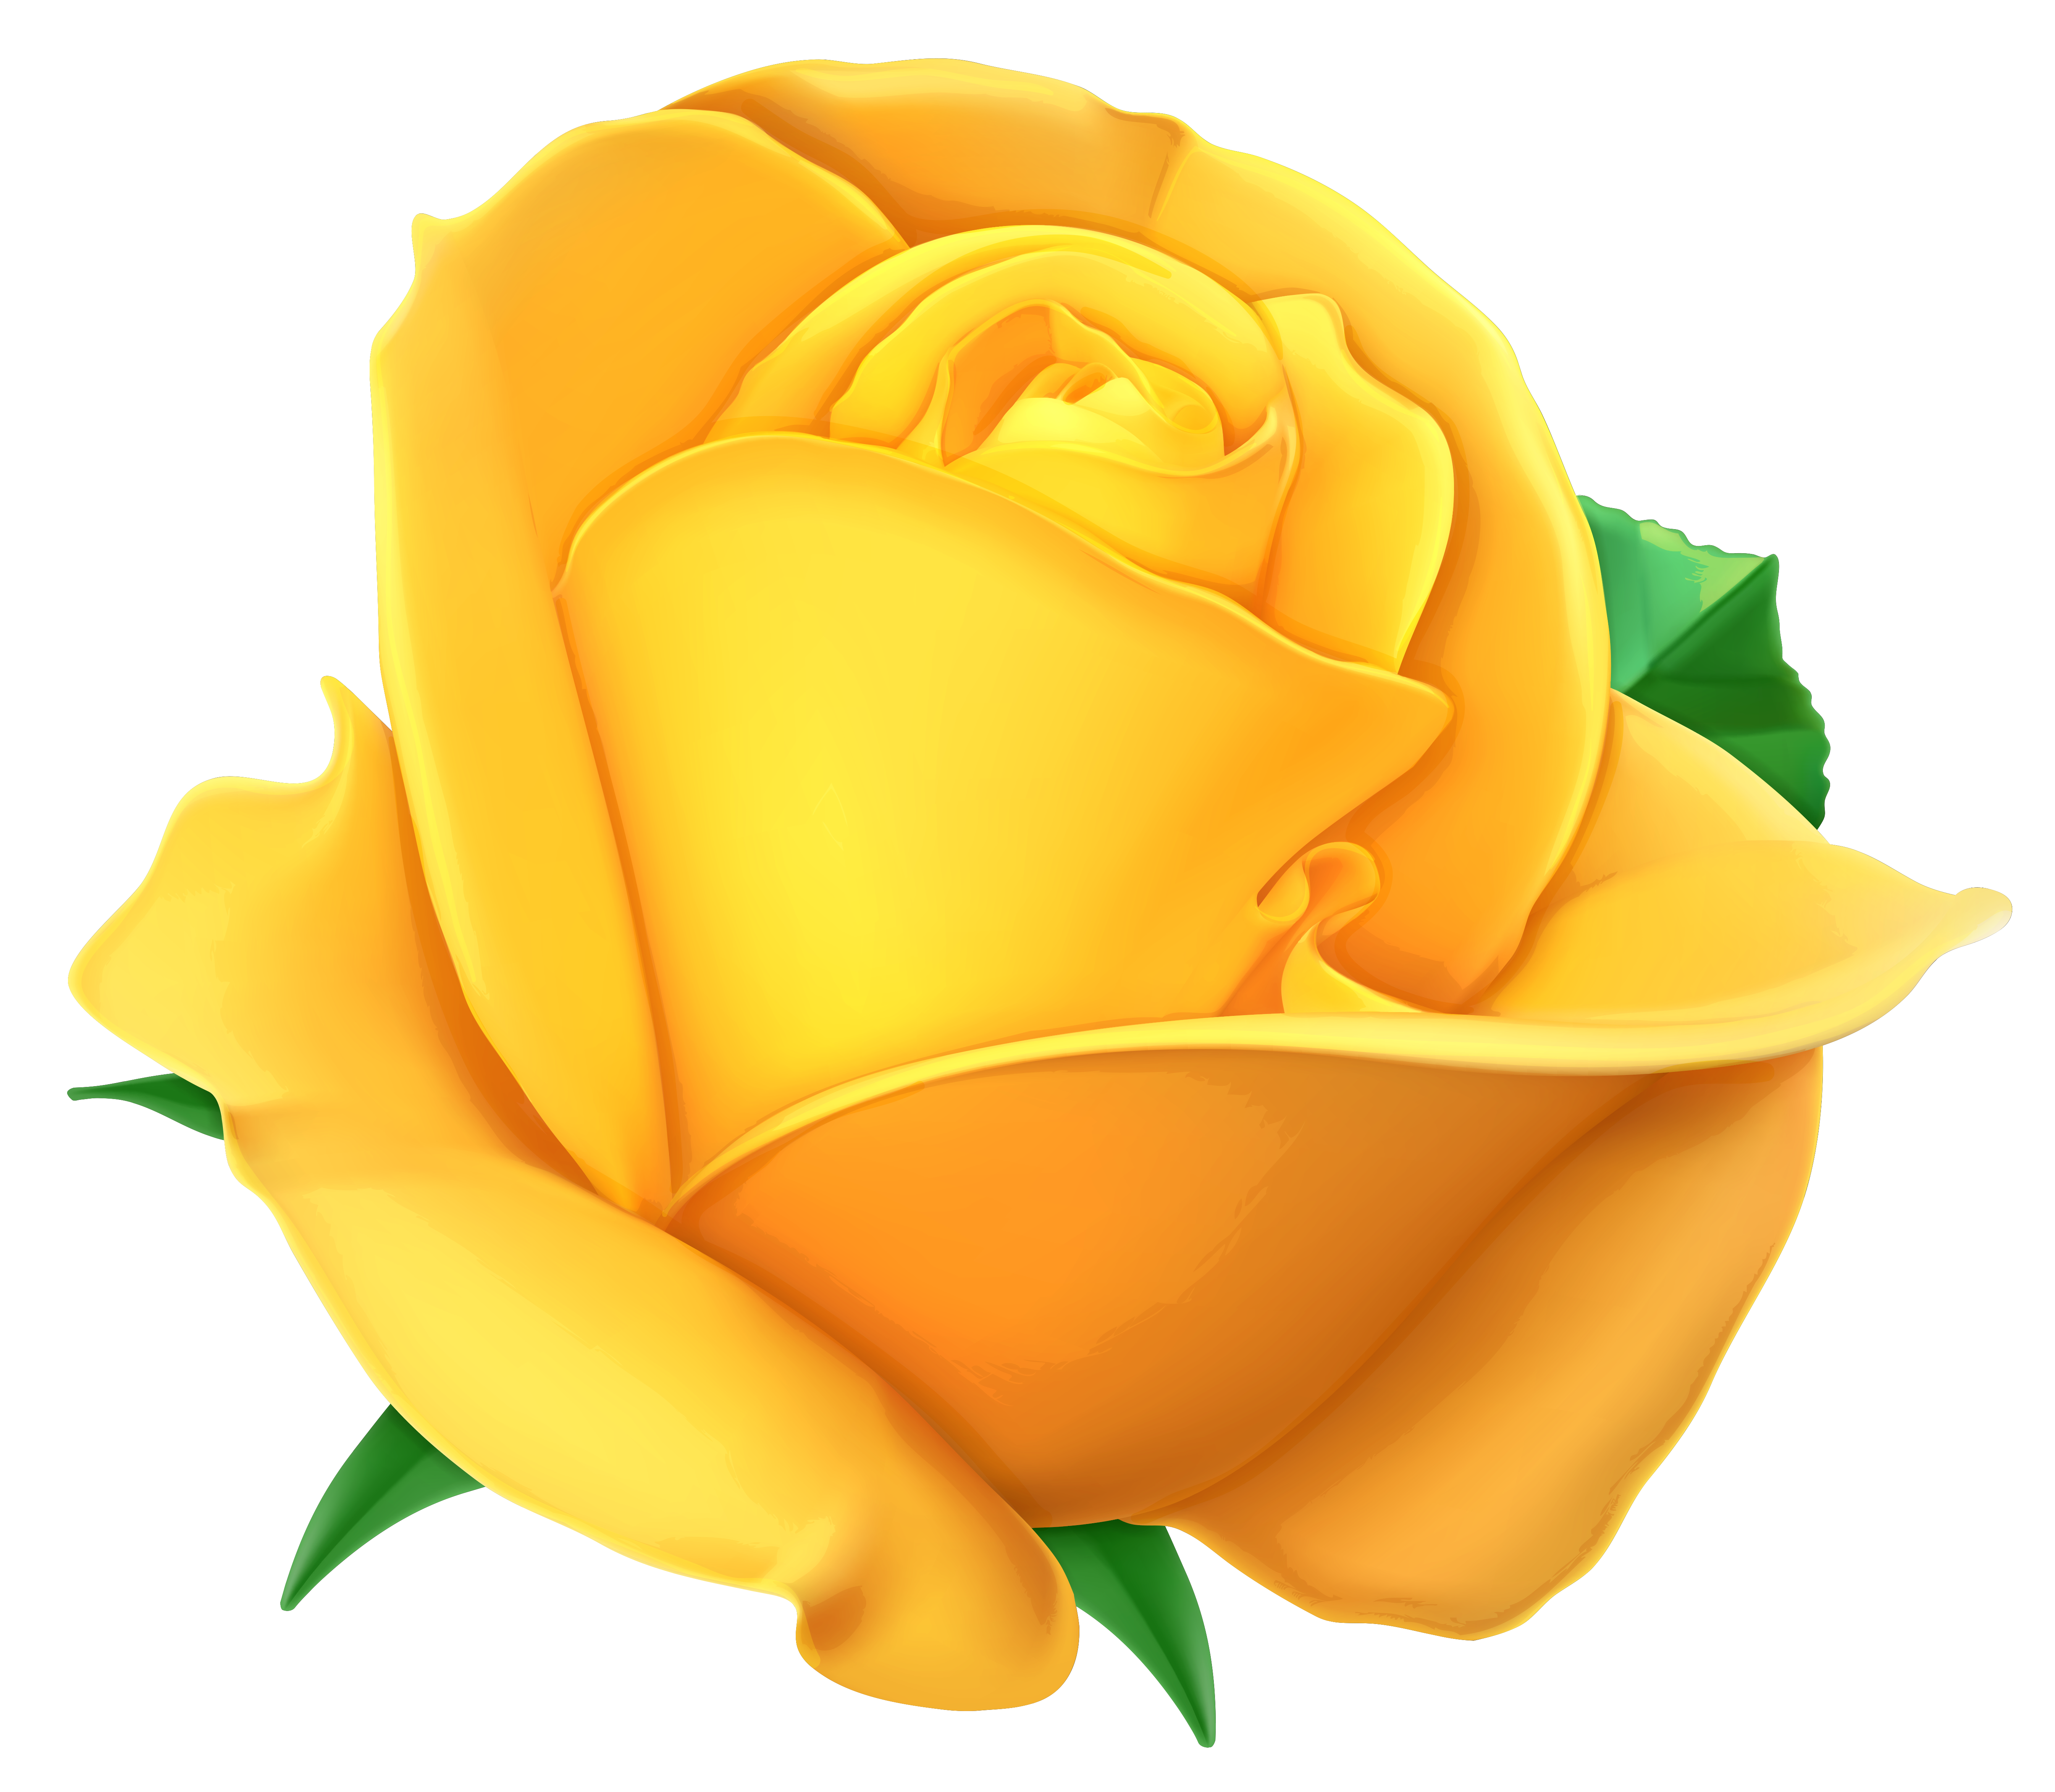 transparent yellow rose png picture free download free pictures rh pinterest com